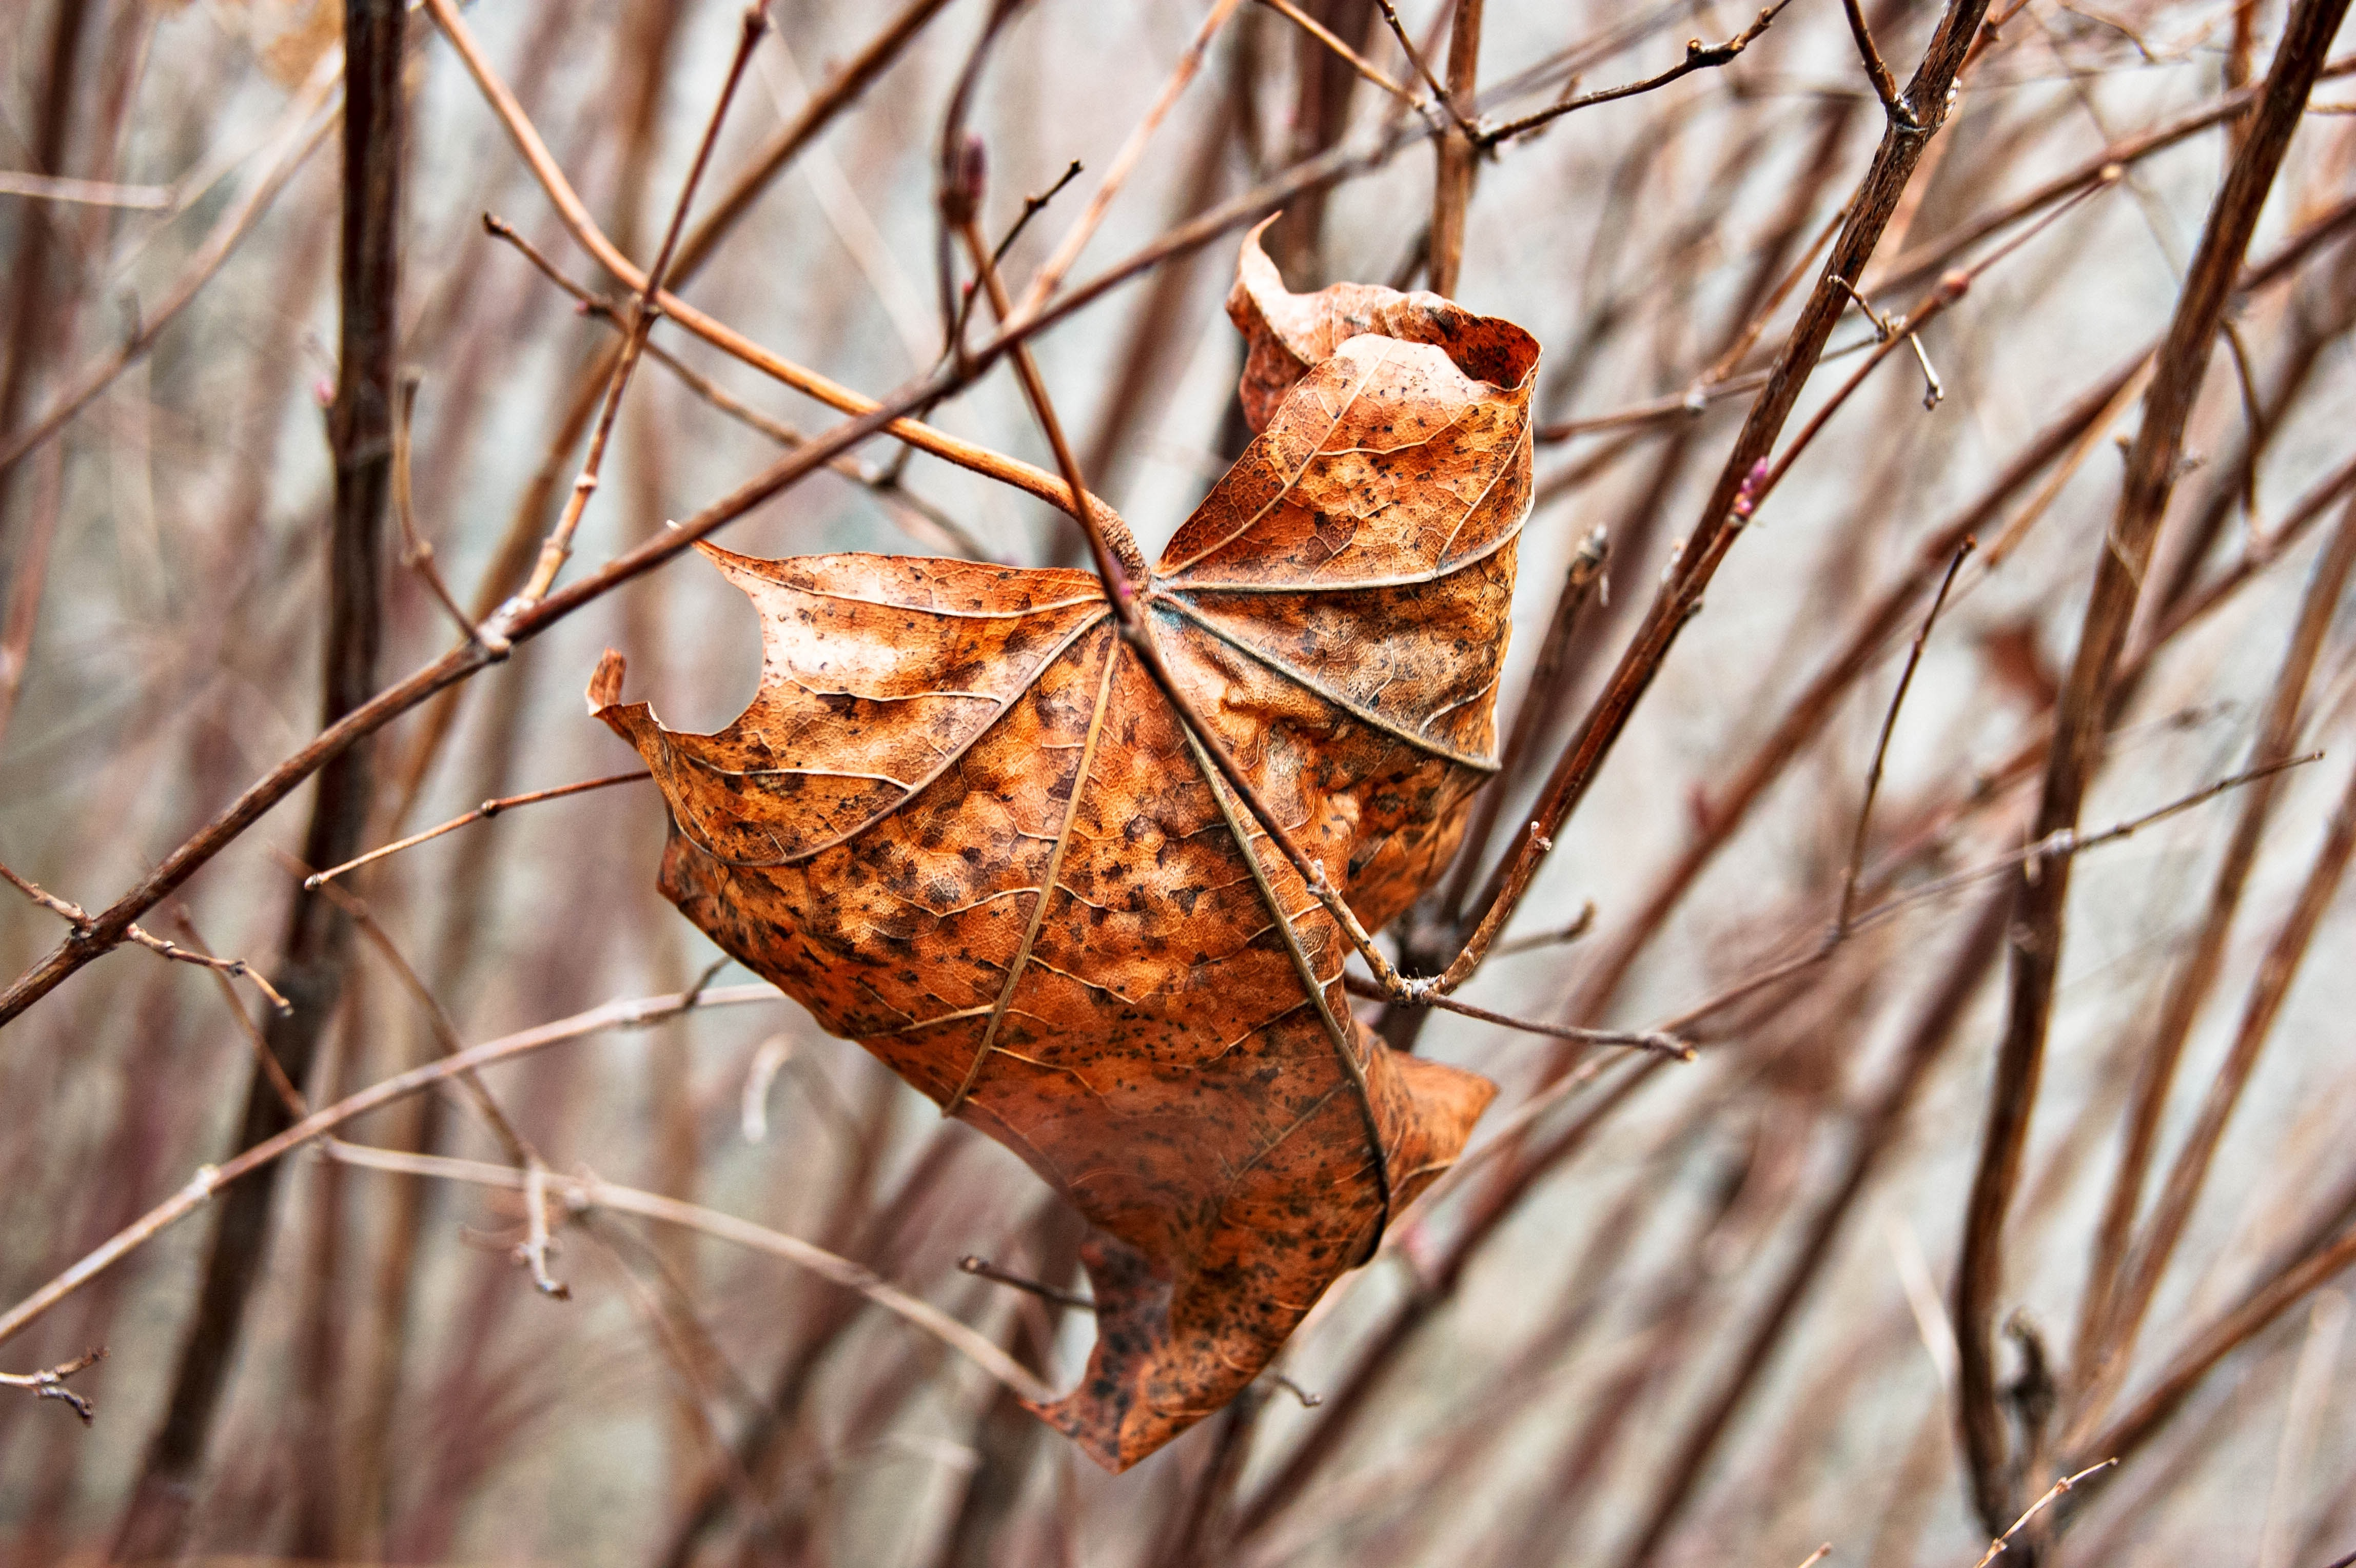 Brown autumn leaf dried up in the branched of a tree